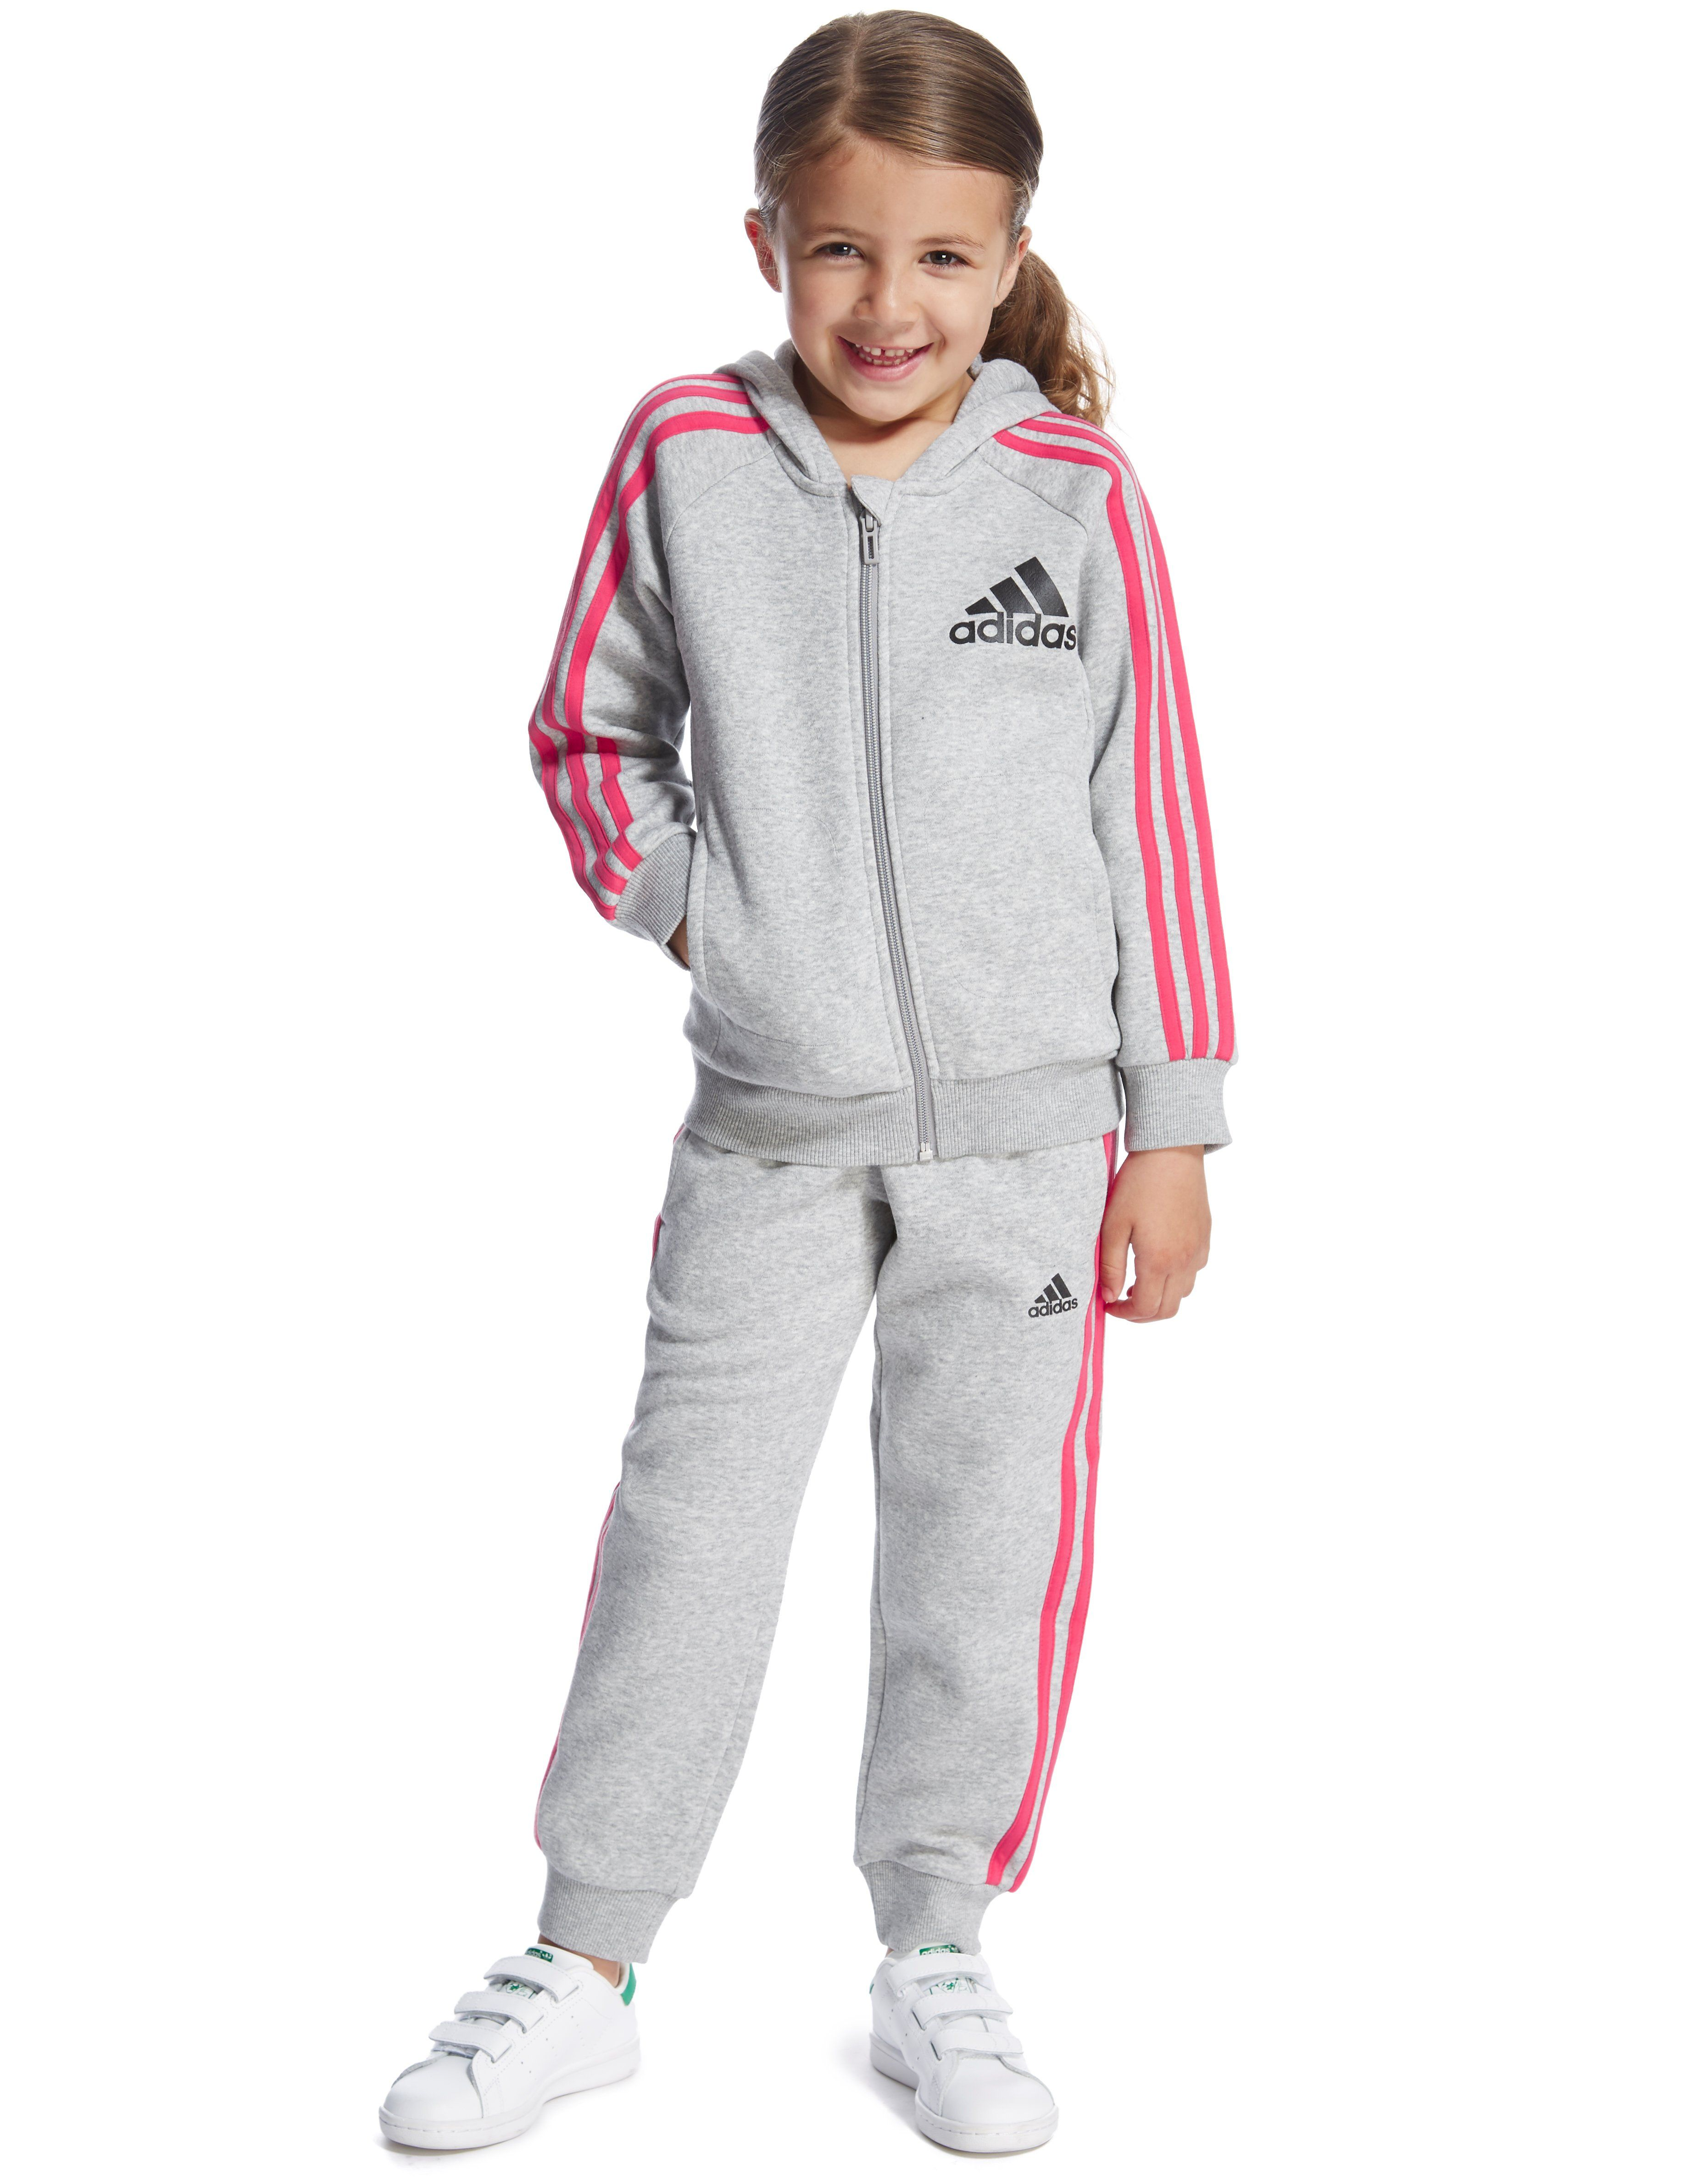 Explore our collection of kid's tracksuits from top brands like Nike & adidas, available to order online today at JD Sports.